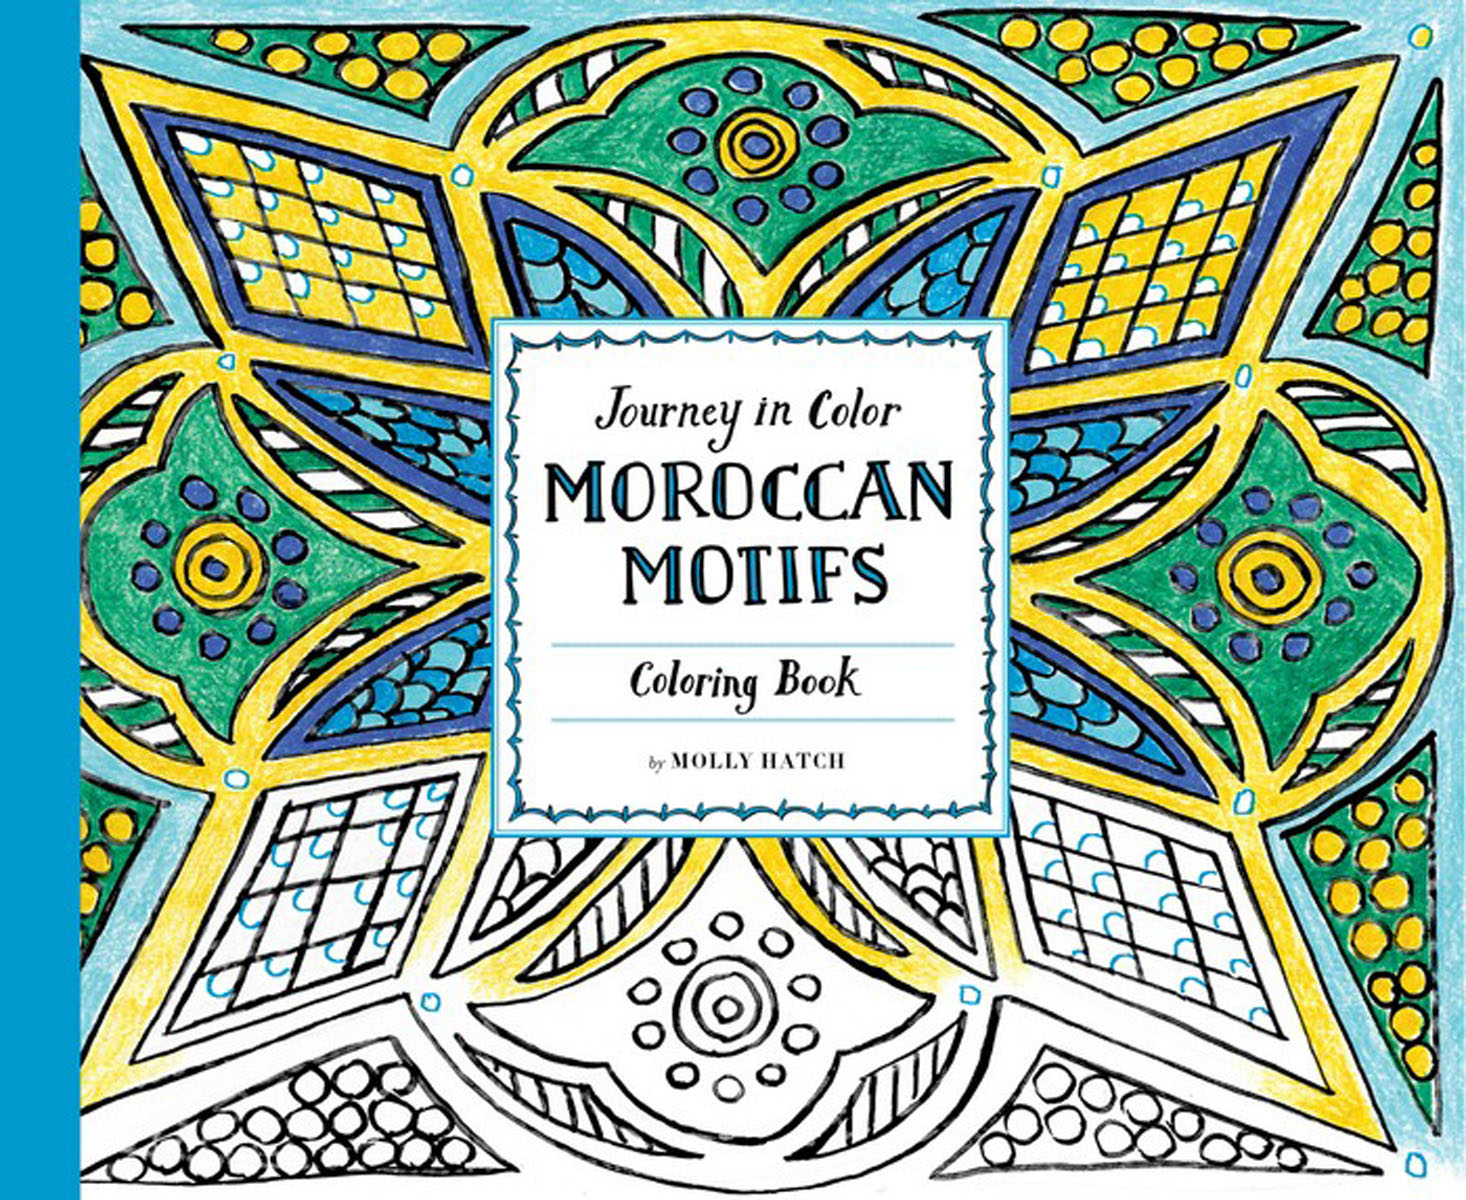 Journey in Color: Moroccan Motifs Coloring Book found in brooklyn